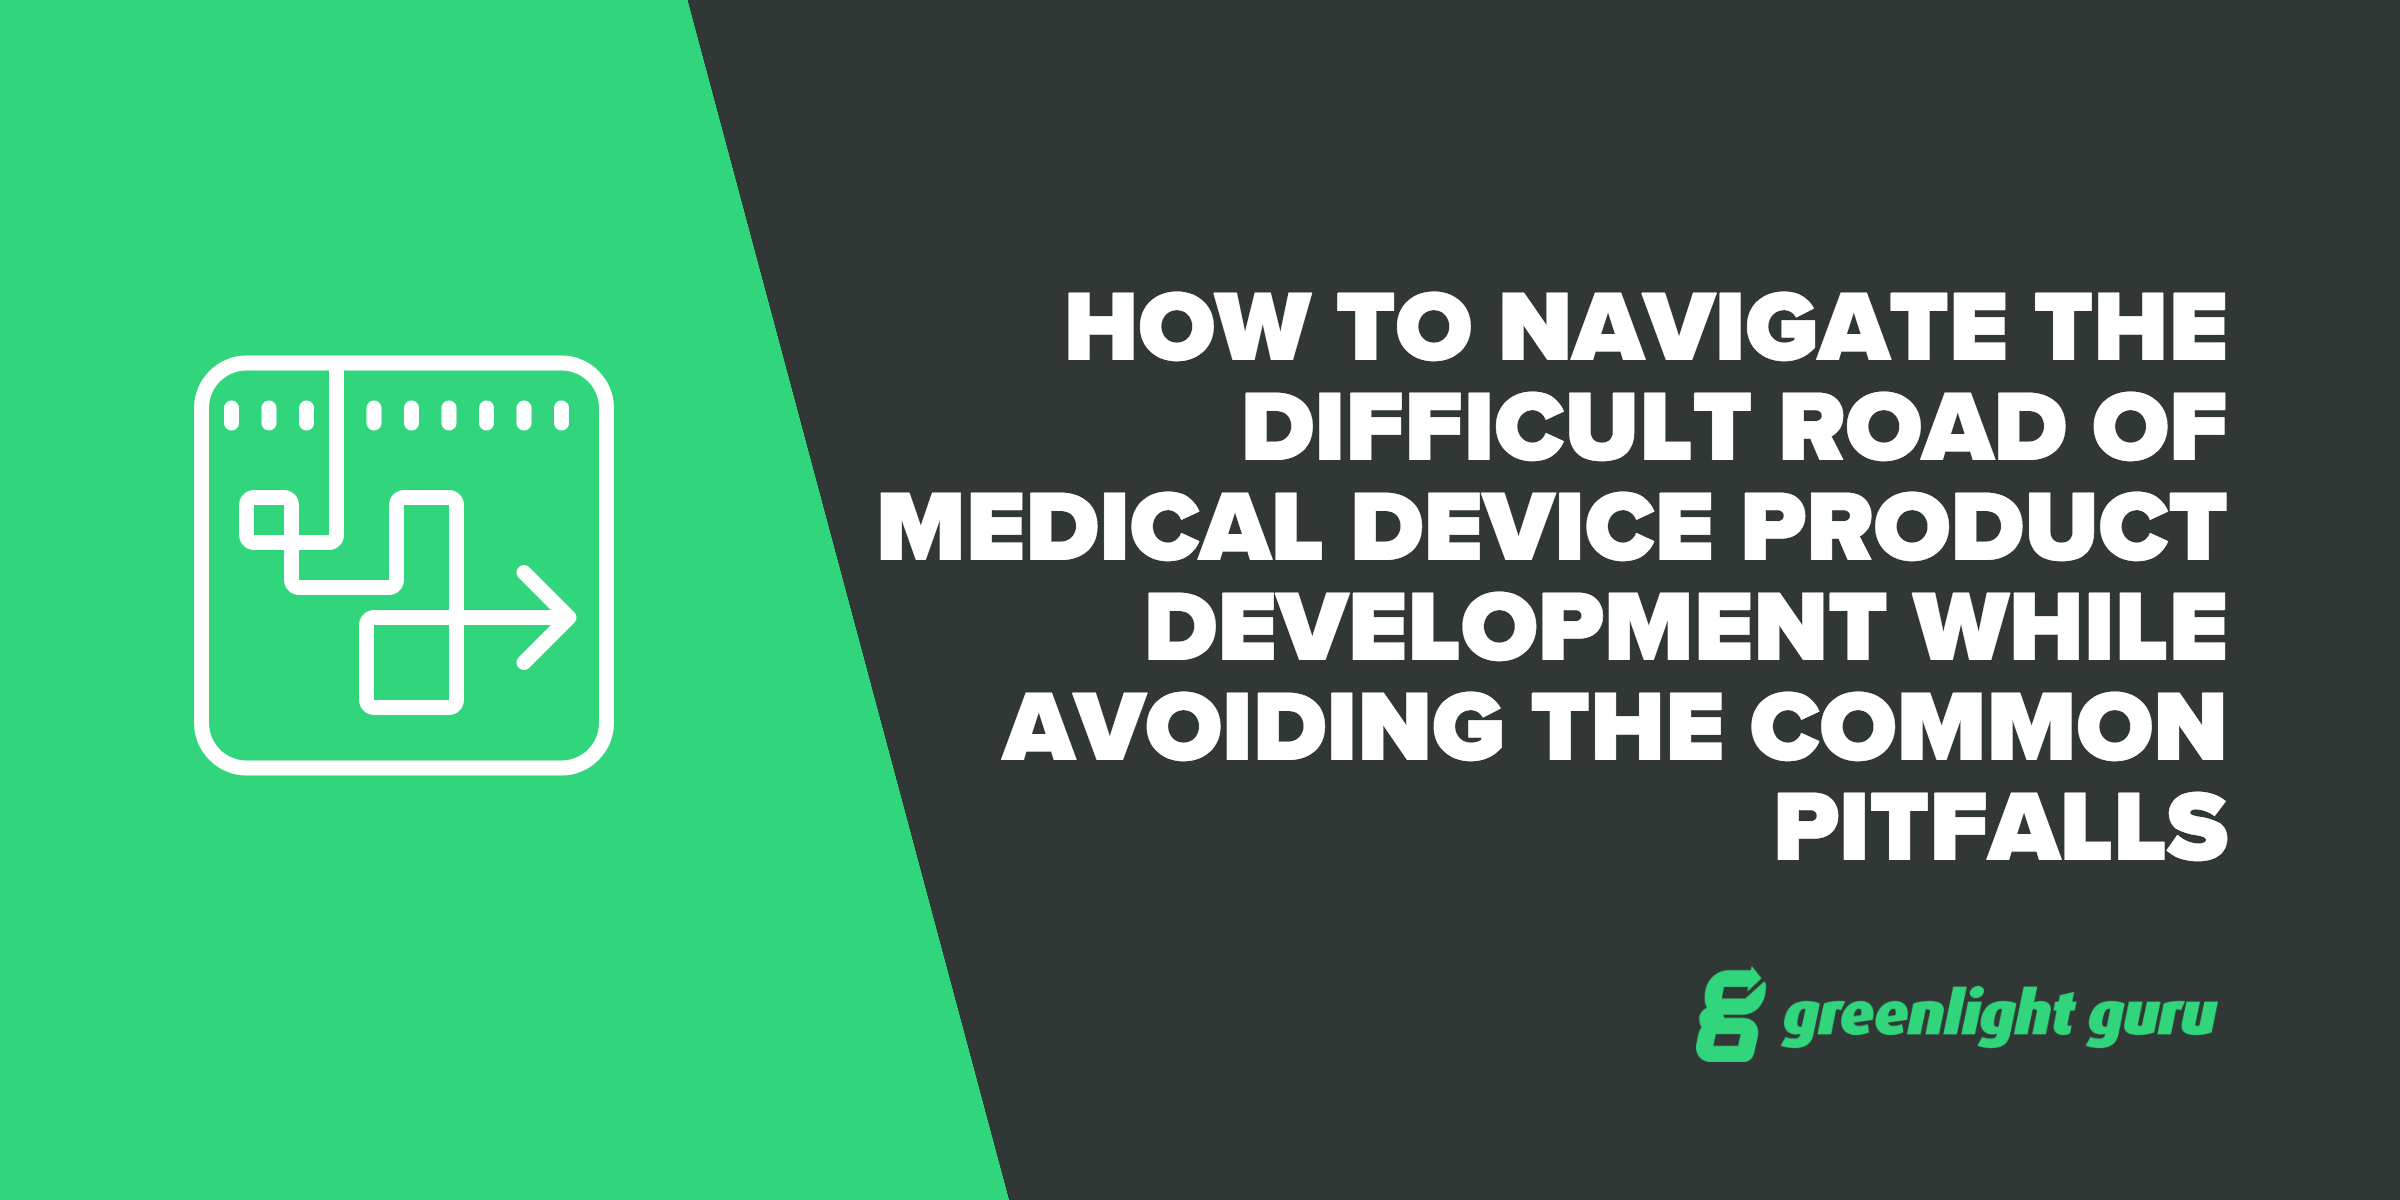 How To Navigate the Difficult Road of Medical Device Product Development While Avoiding the Common Pitfalls - Featured Image